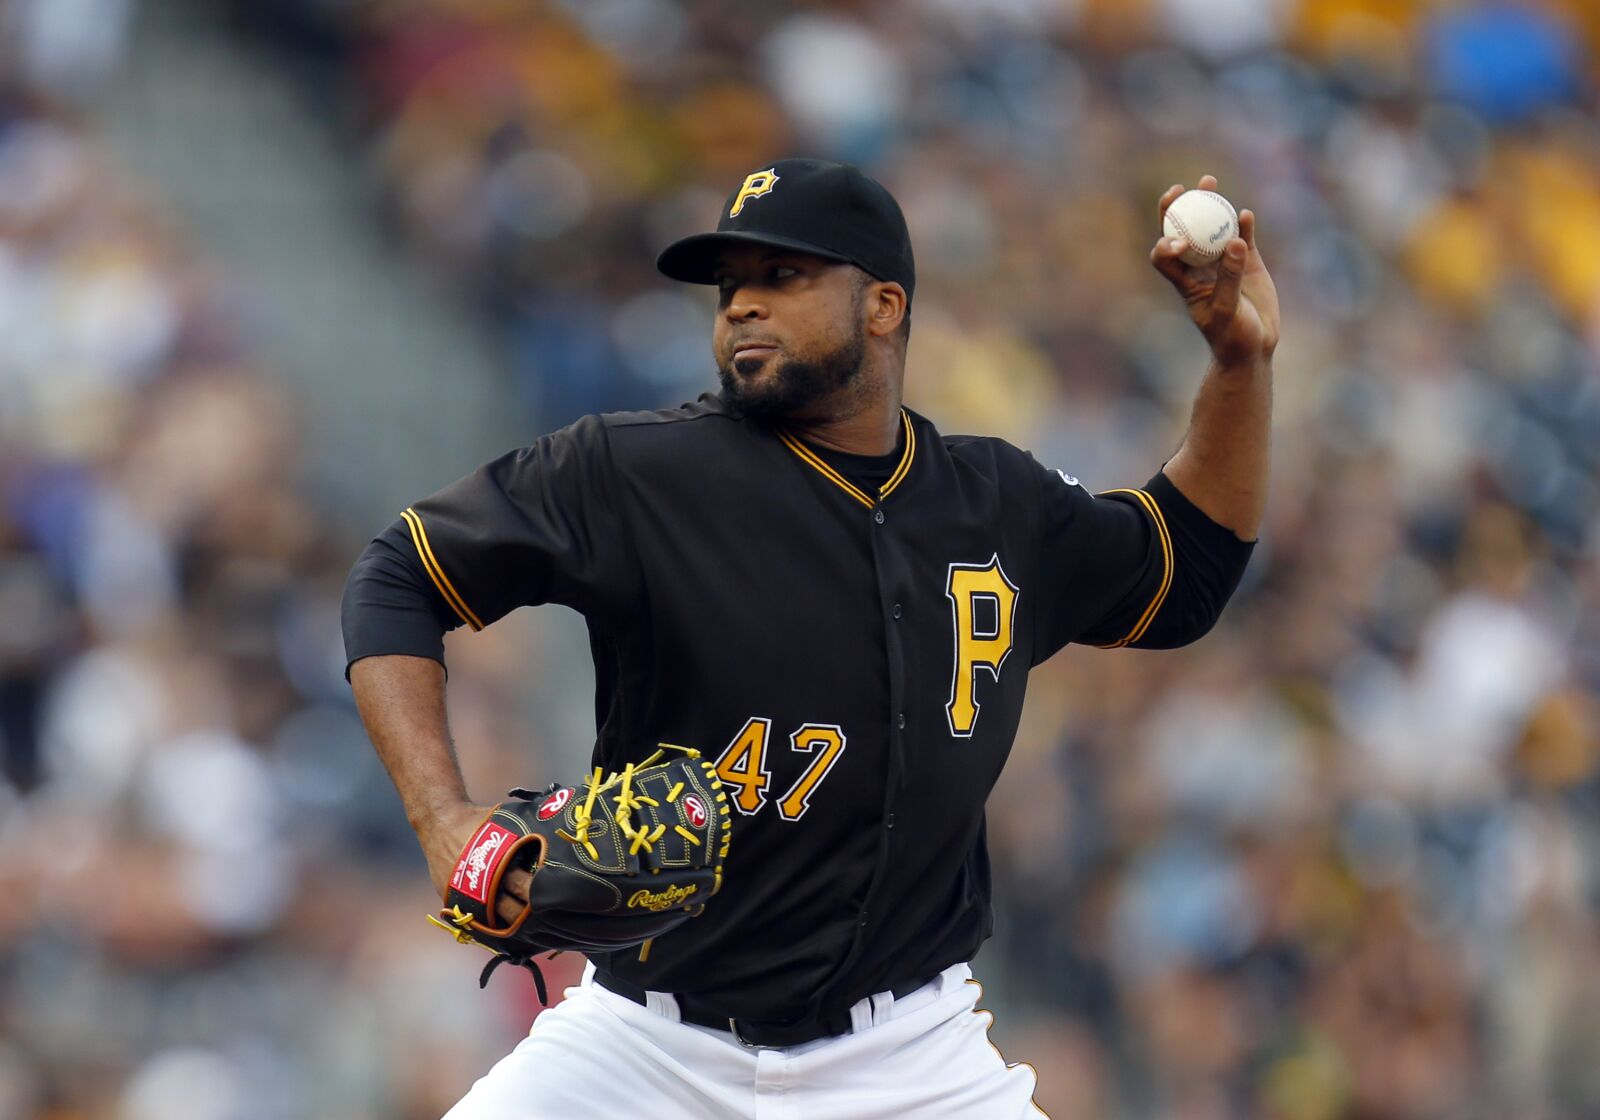 Pittsburgh Pirates: Minor League Deals Working Out